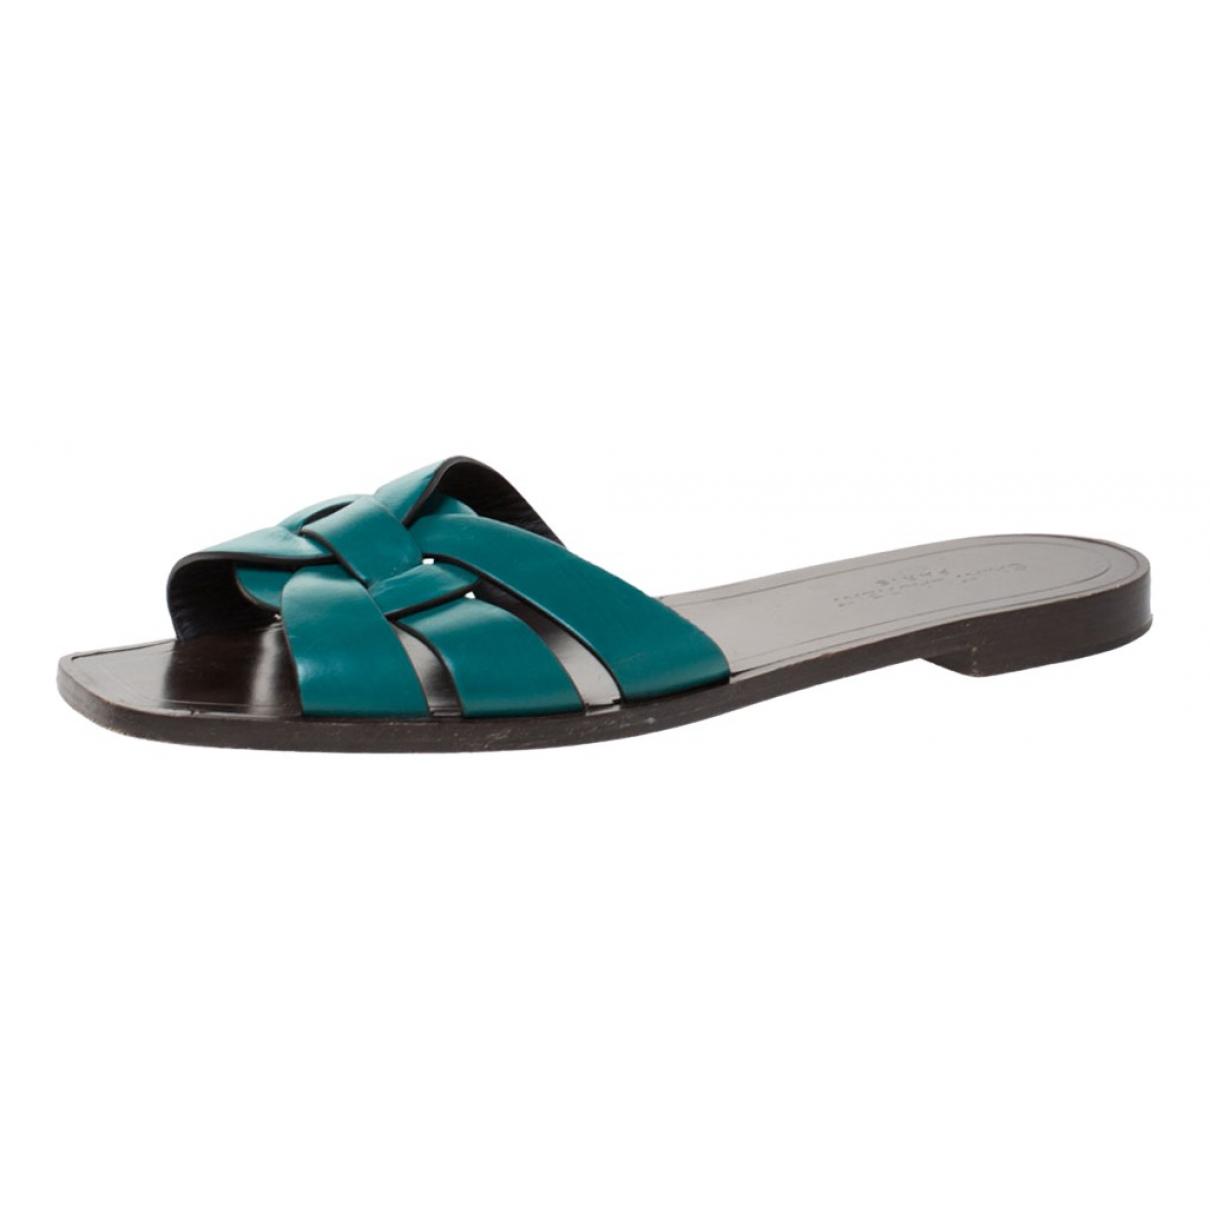 Saint Laurent \N Sandalen in  Gruen Leder